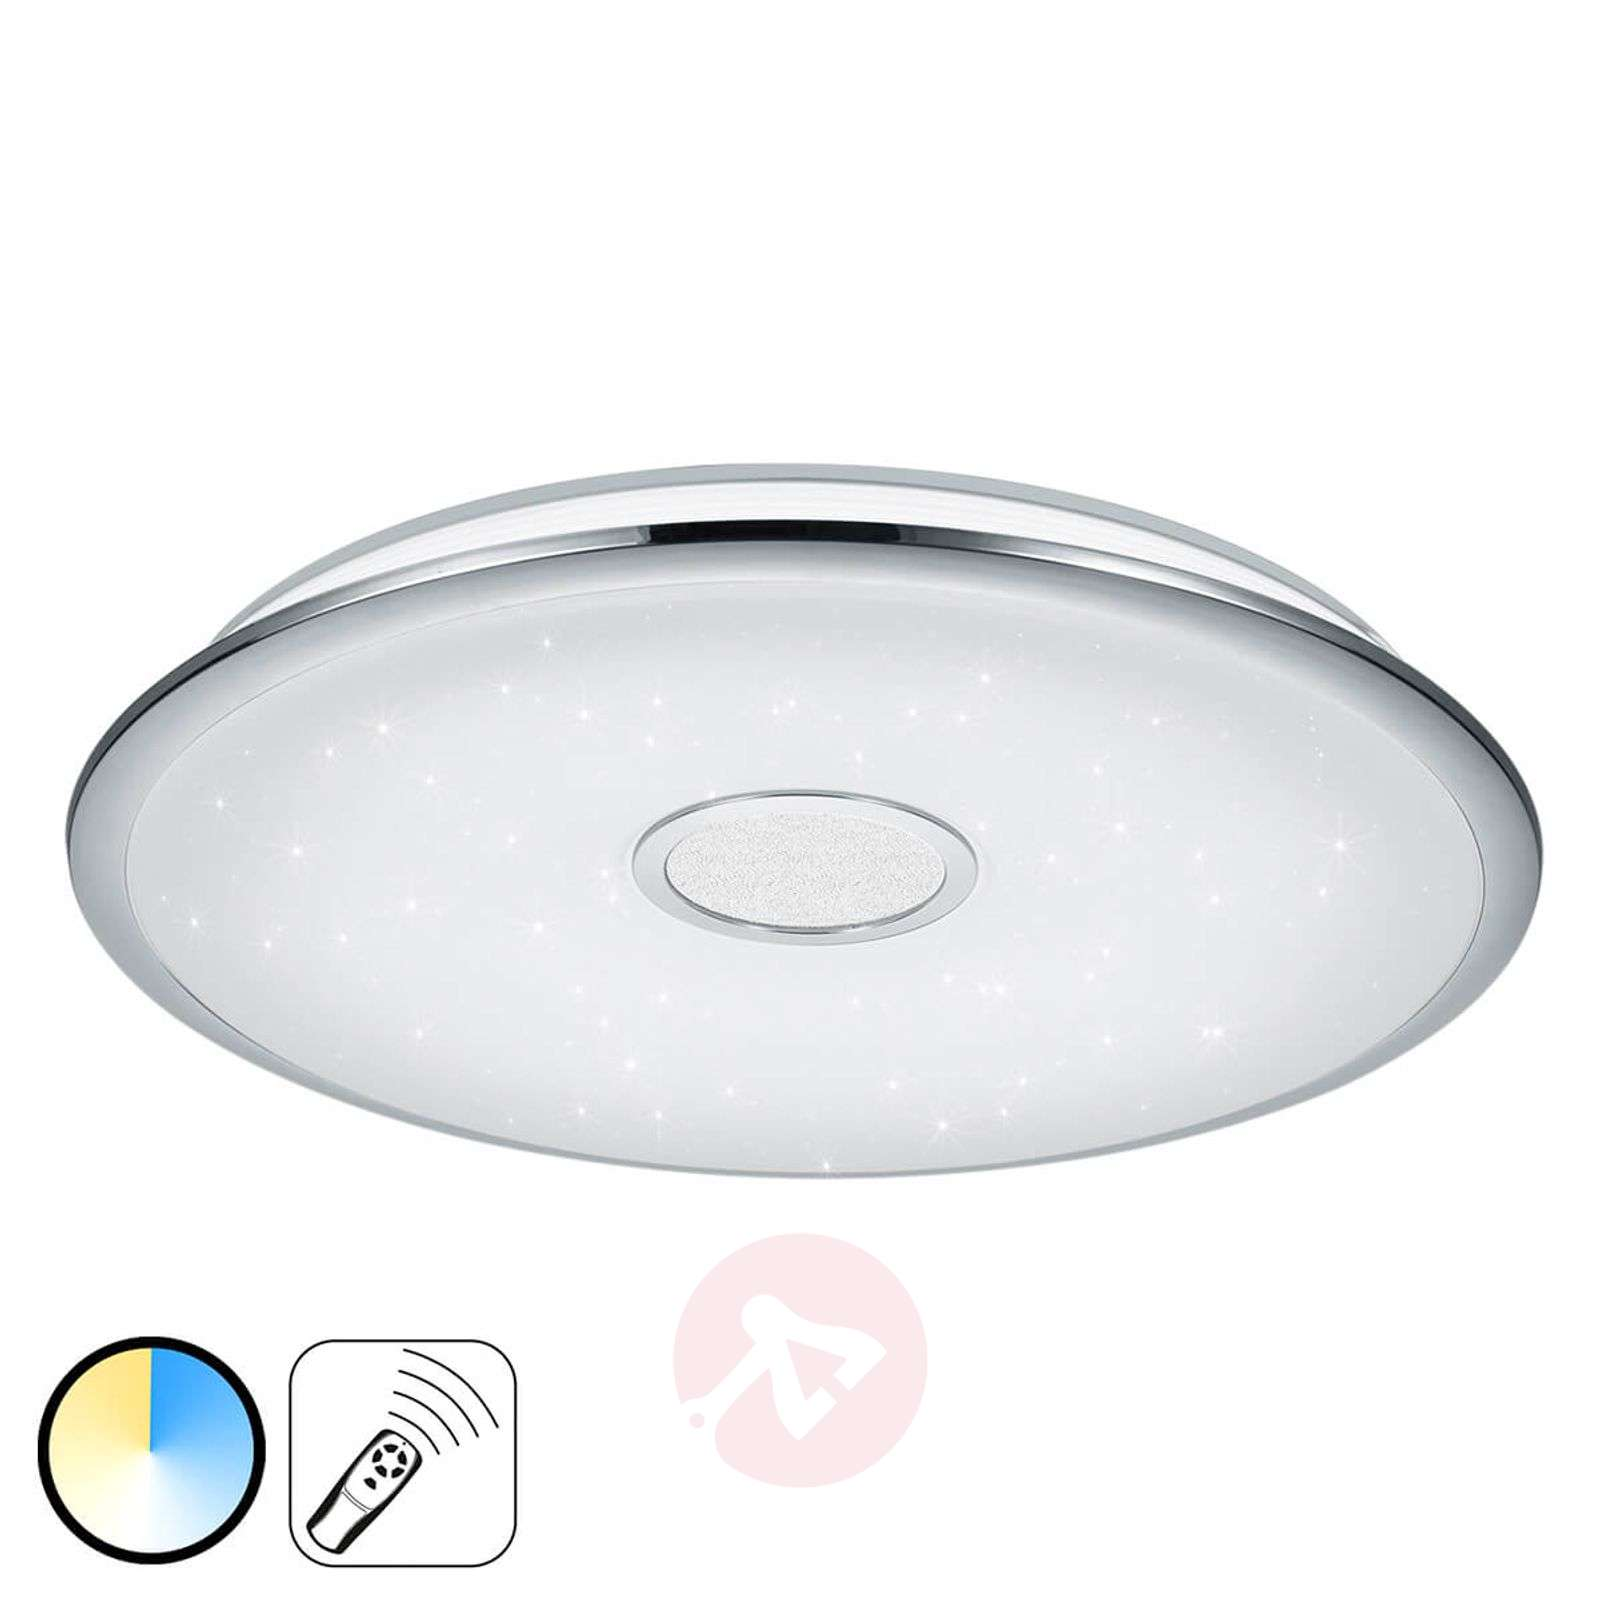 control ceiling lamp fixture crystal modern light bedroom pin home lustre living lighting led room for remote ceilings